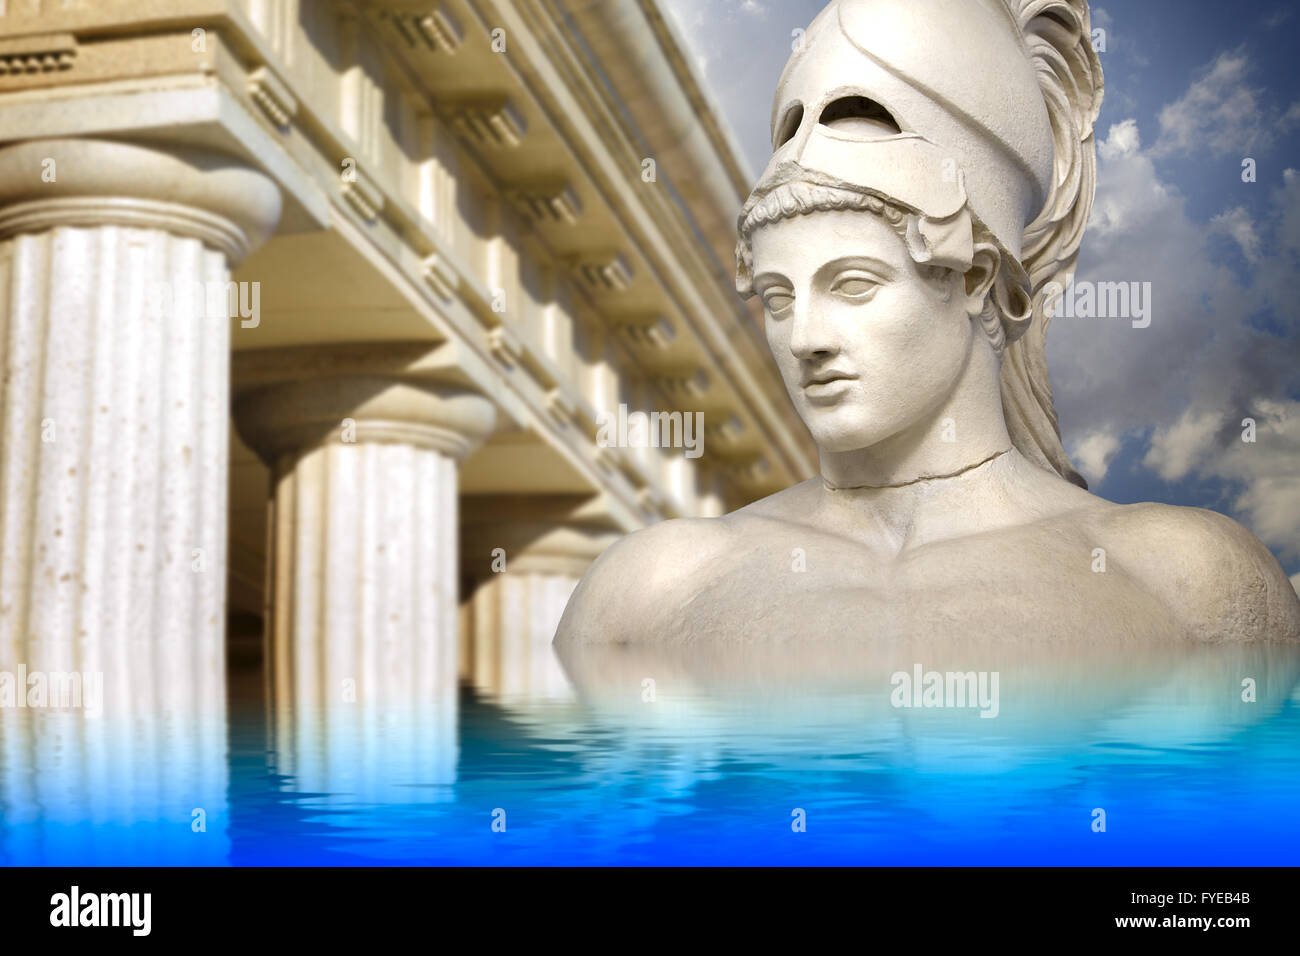 Greek sculpture of the General Pericles, Greek art reflected in a calm sea. - Stock Image